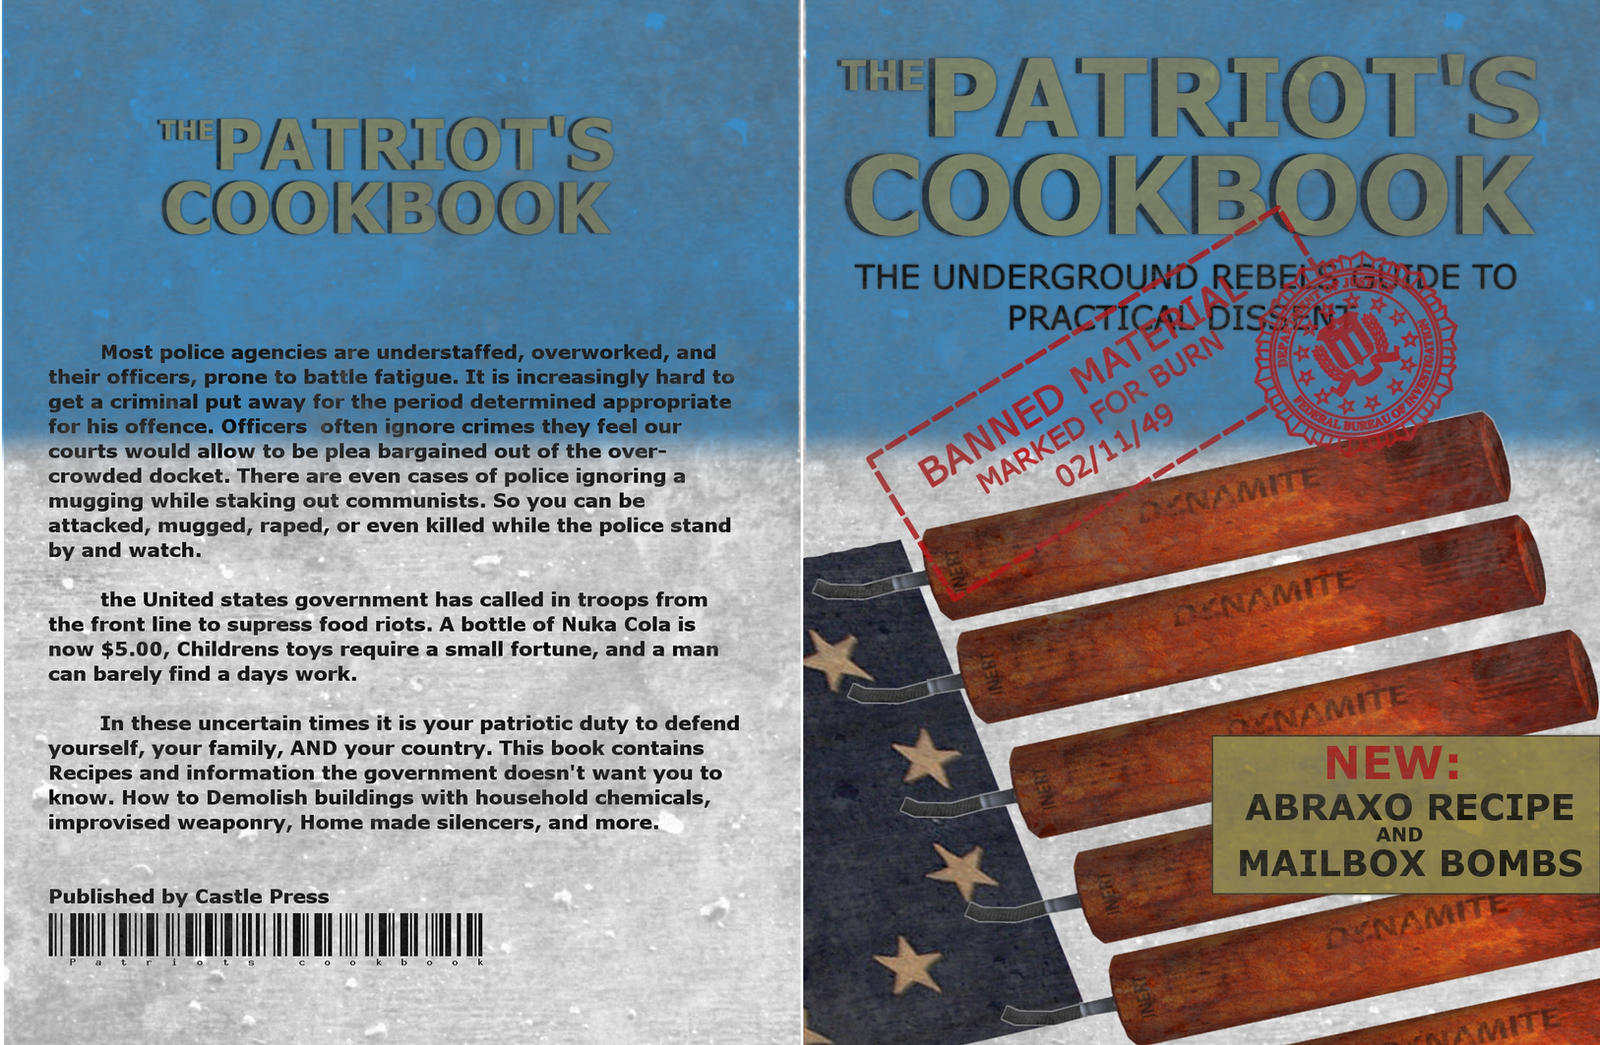 The patriots cookbook by emptysamurai